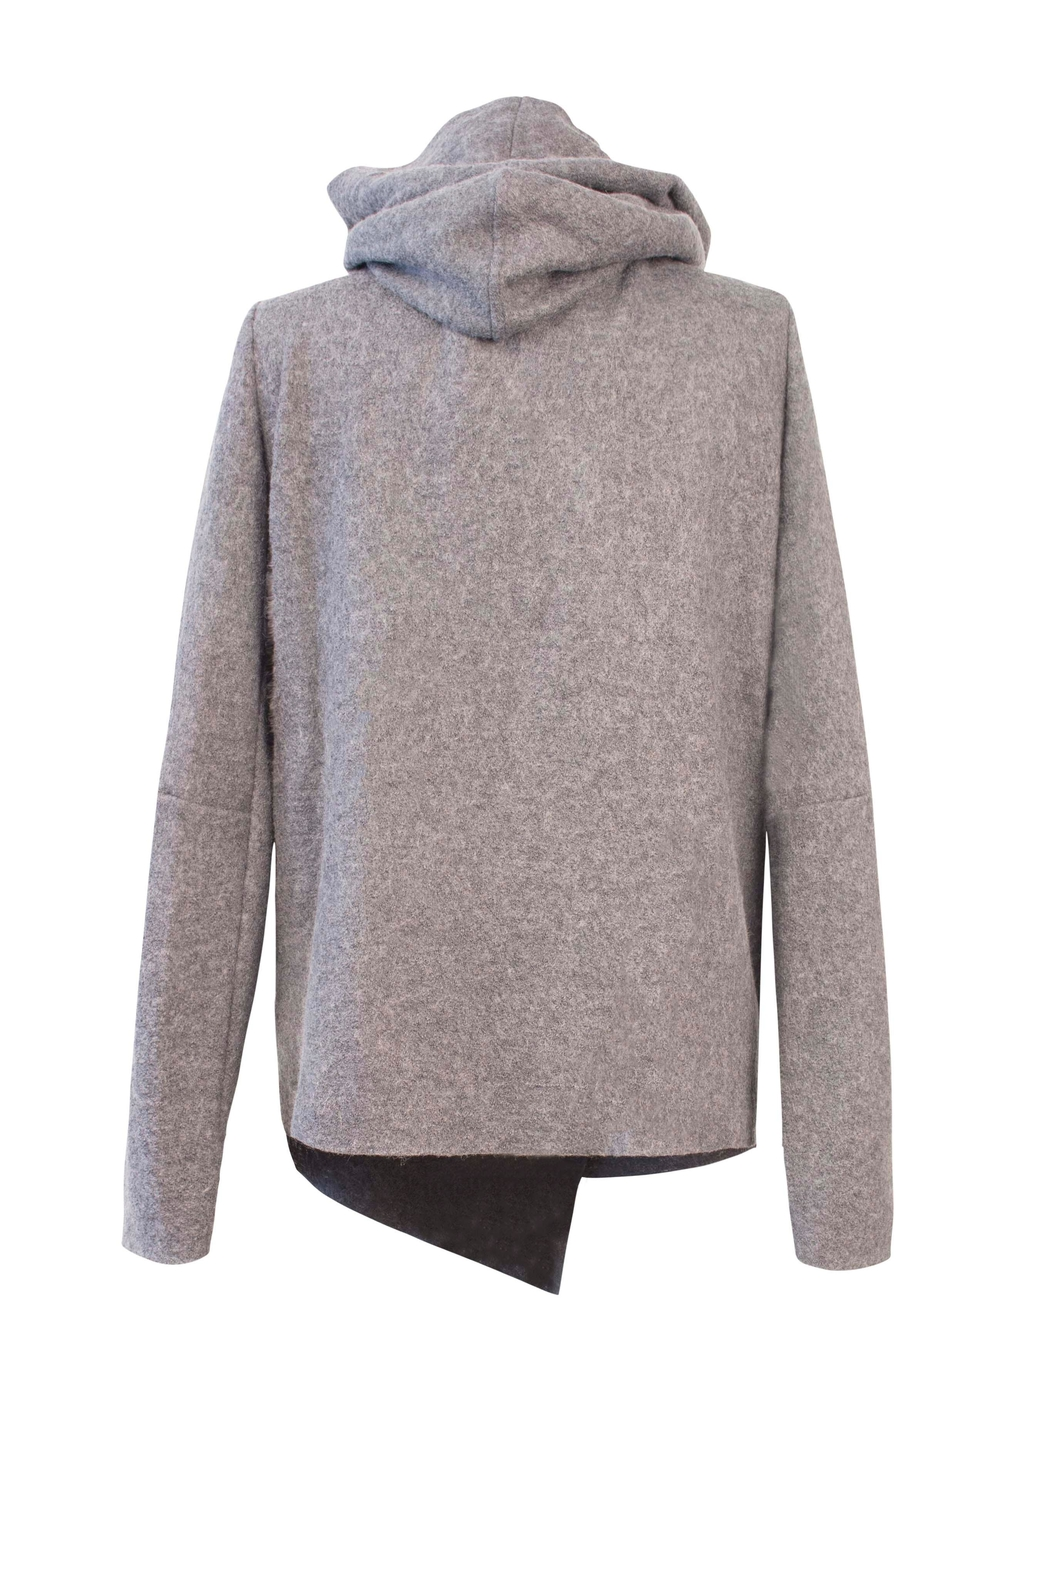 Helena Jones Wool Hooded Top - Front Full Image